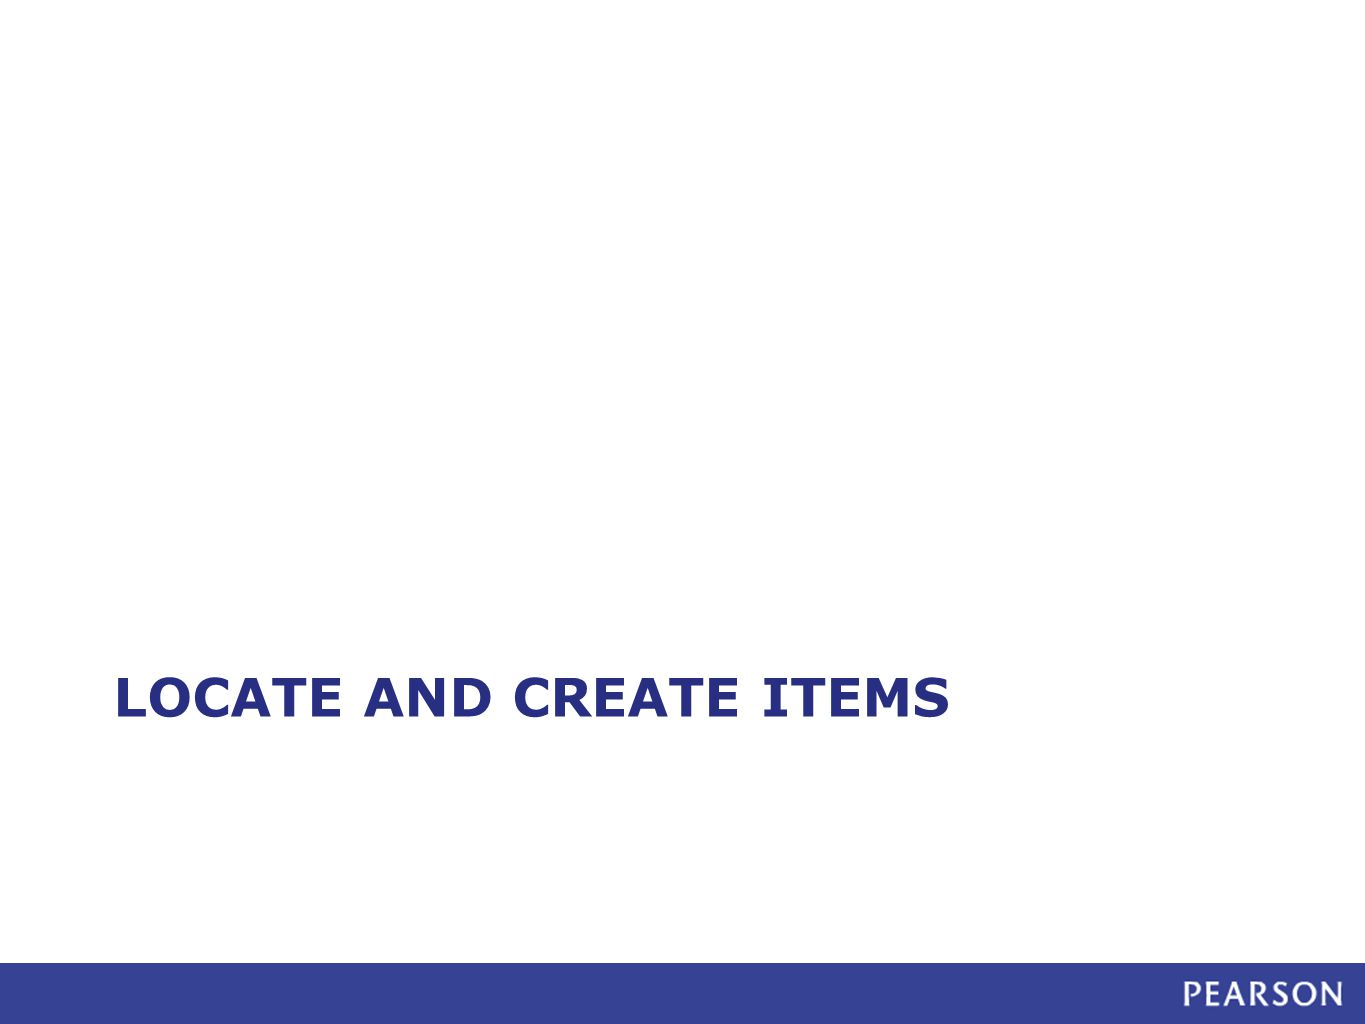 Create Test Content (Items) ITEM CENTRAL TEST CENTRAL Create items Set up test Create items within test Add items to Item Central Select items from Item Central Select items from Item Central Create items separately or as part of a test.